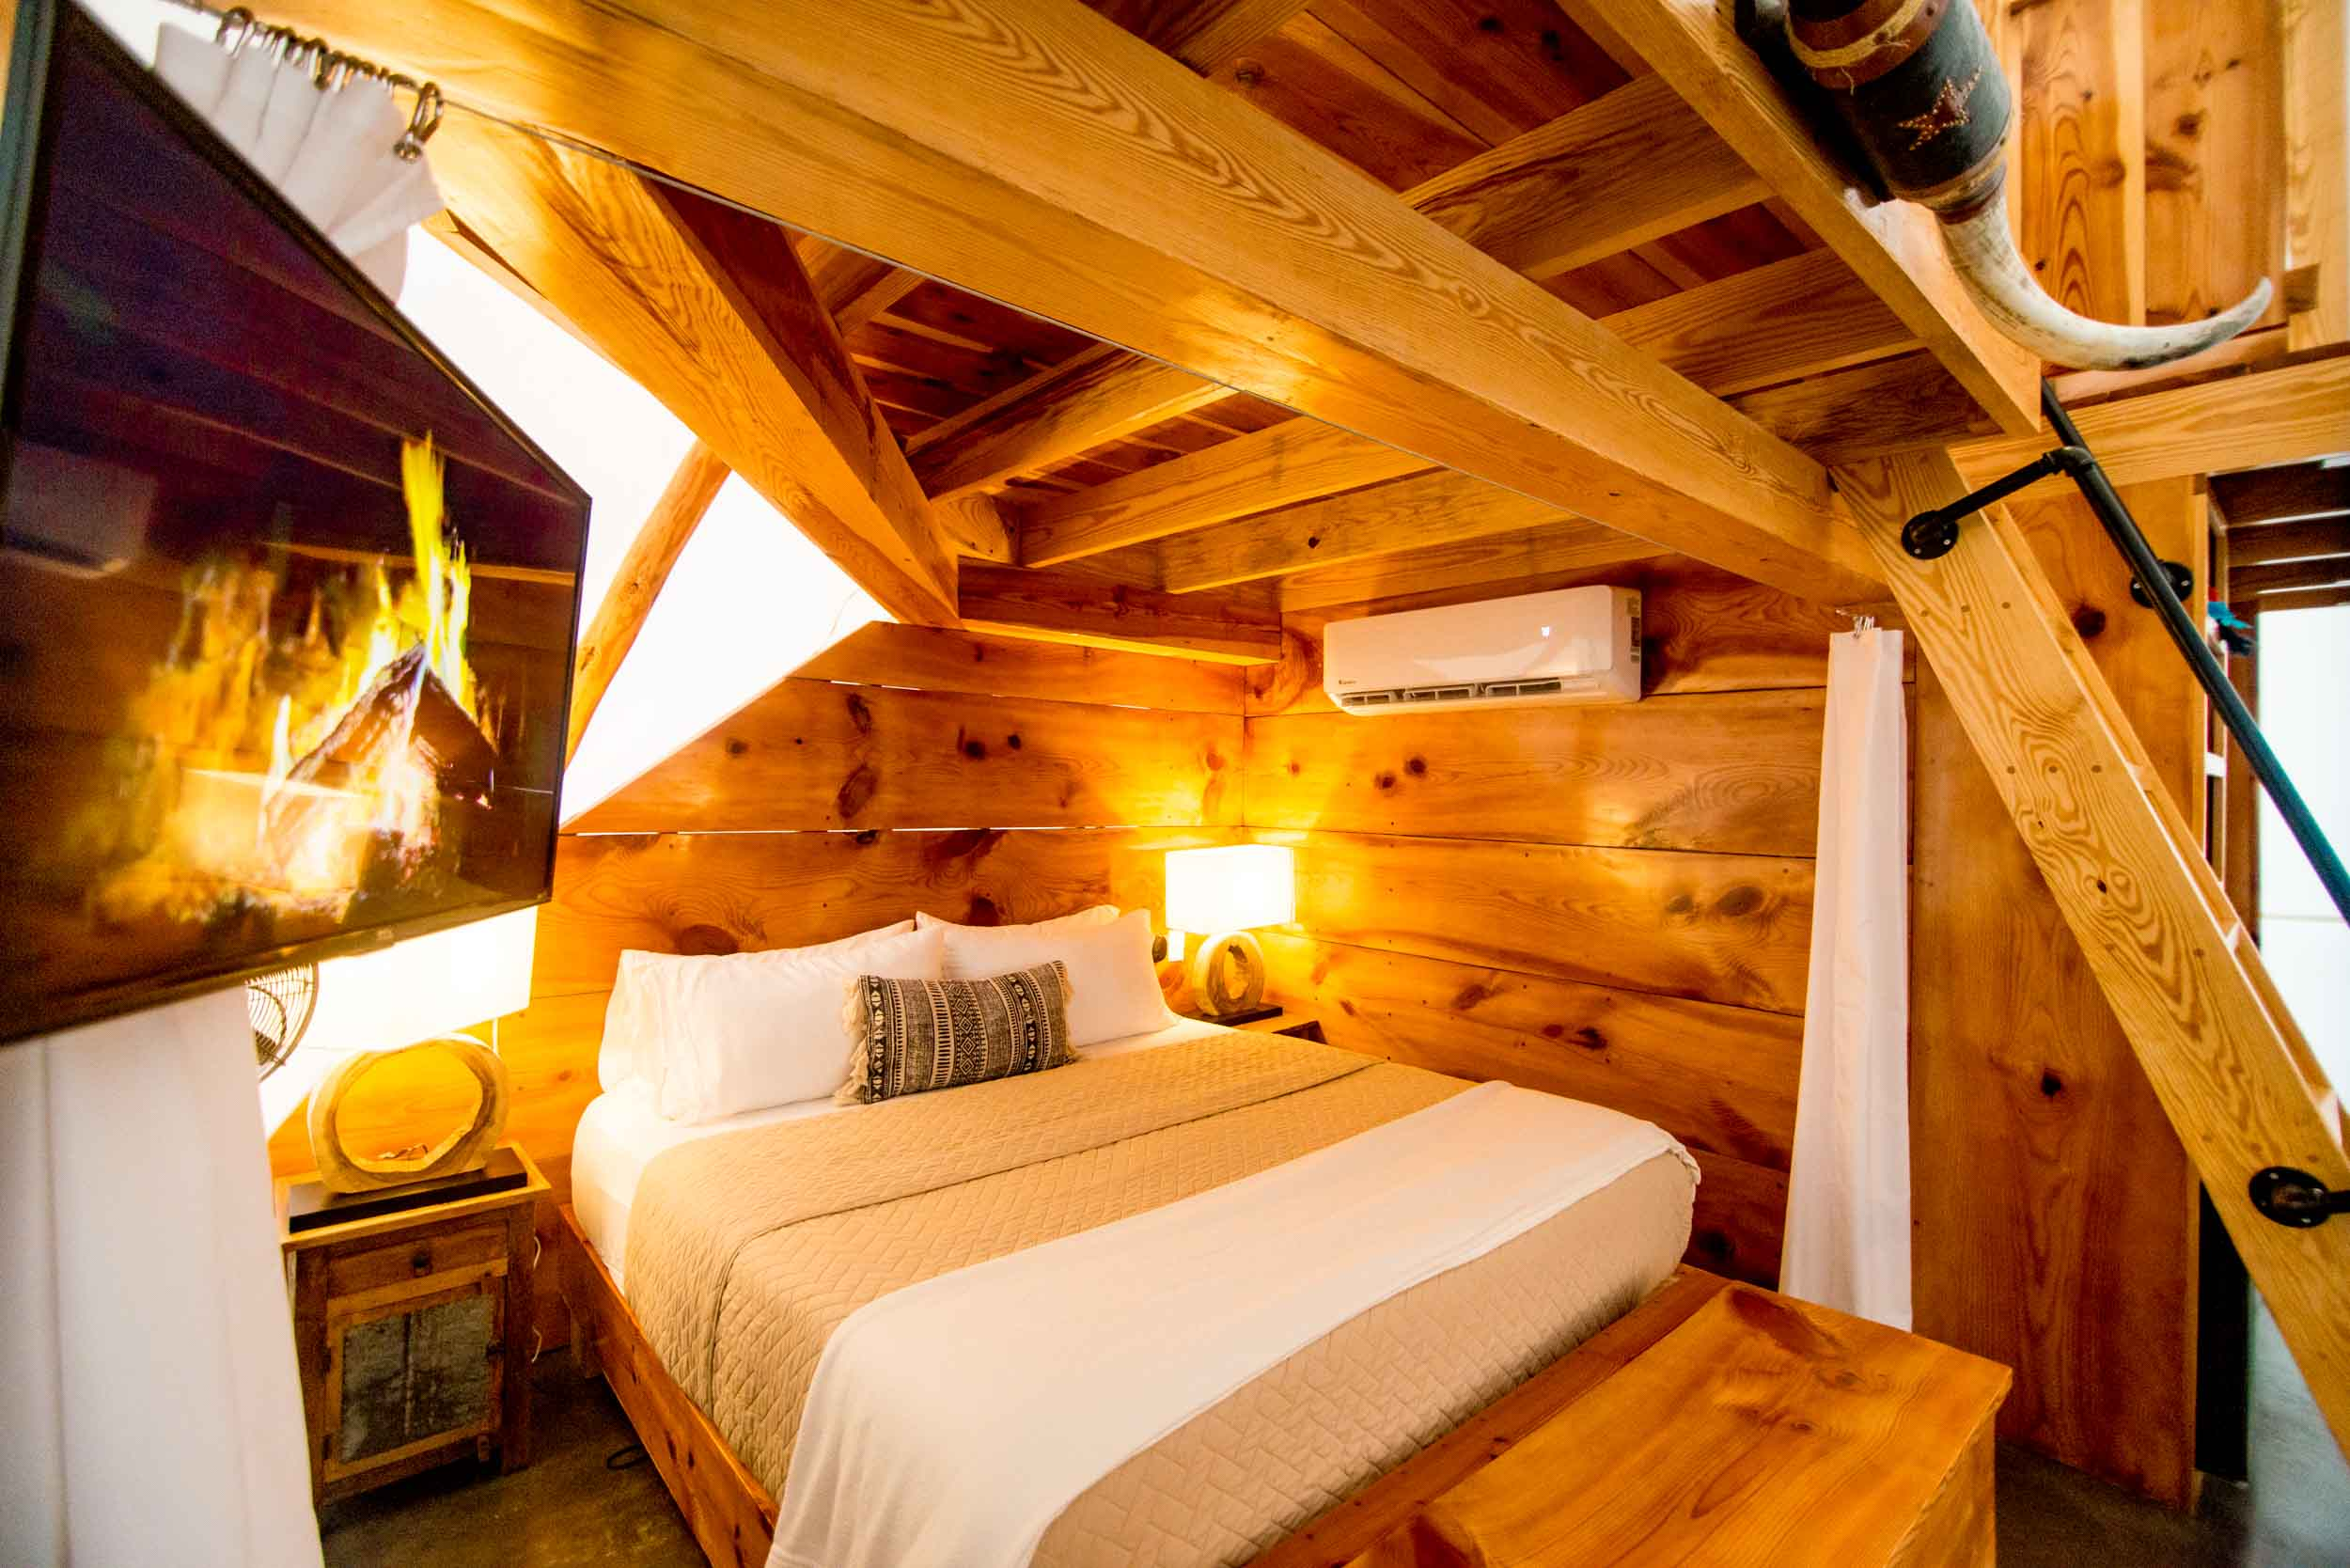 architecture+photographer+tipis+interiors+photography+airbnb+photo-1.jpg